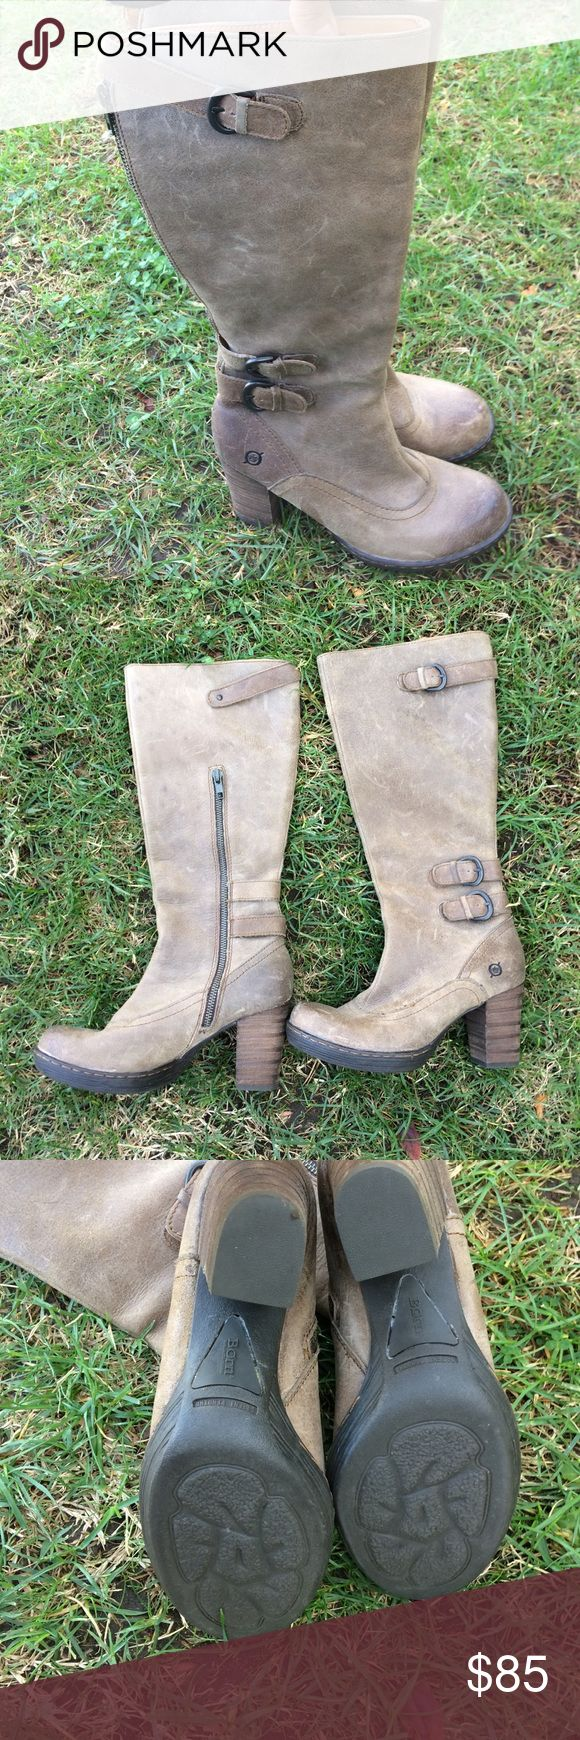 BORN boots  🎀NEW NO TAG .🎀 FINAL SALE BEAUTIFUL LEATHER BOOTS . Born Shoes Winter & Rain Boots